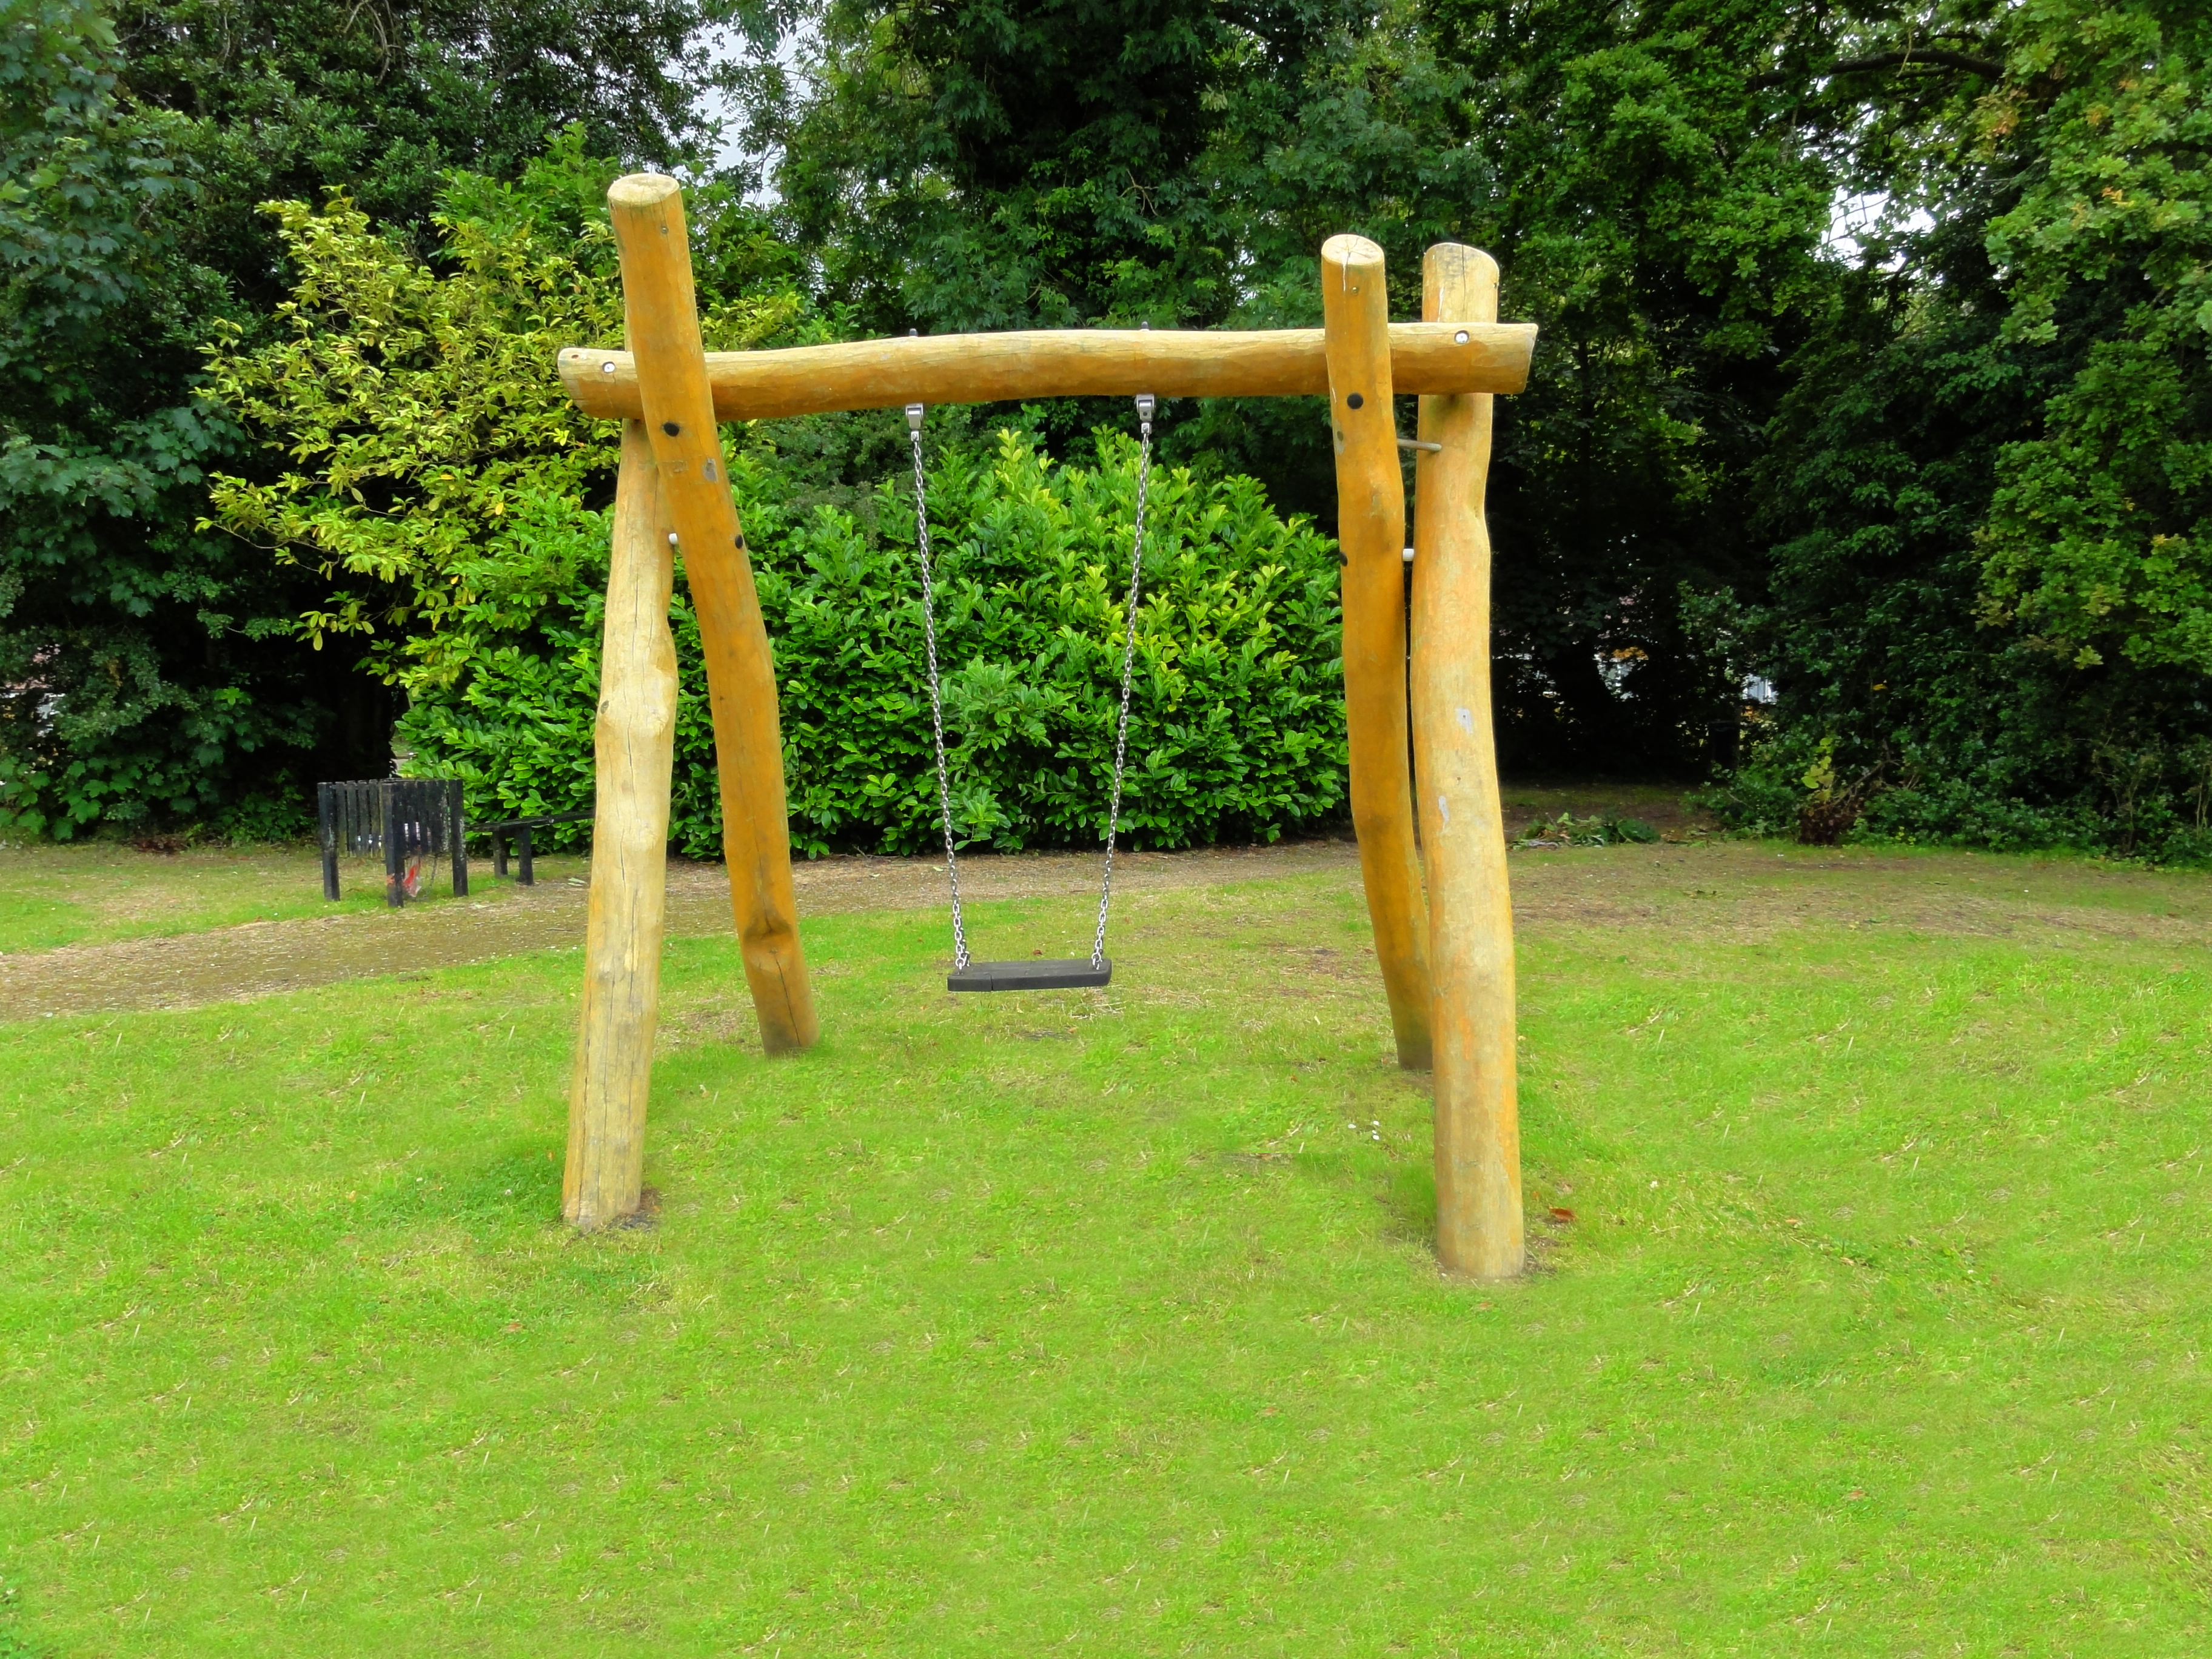 Swing with 1 swing seat, chains of stainless steel, h 2.0 m, 4.000 of Robinia Wood - CPCL